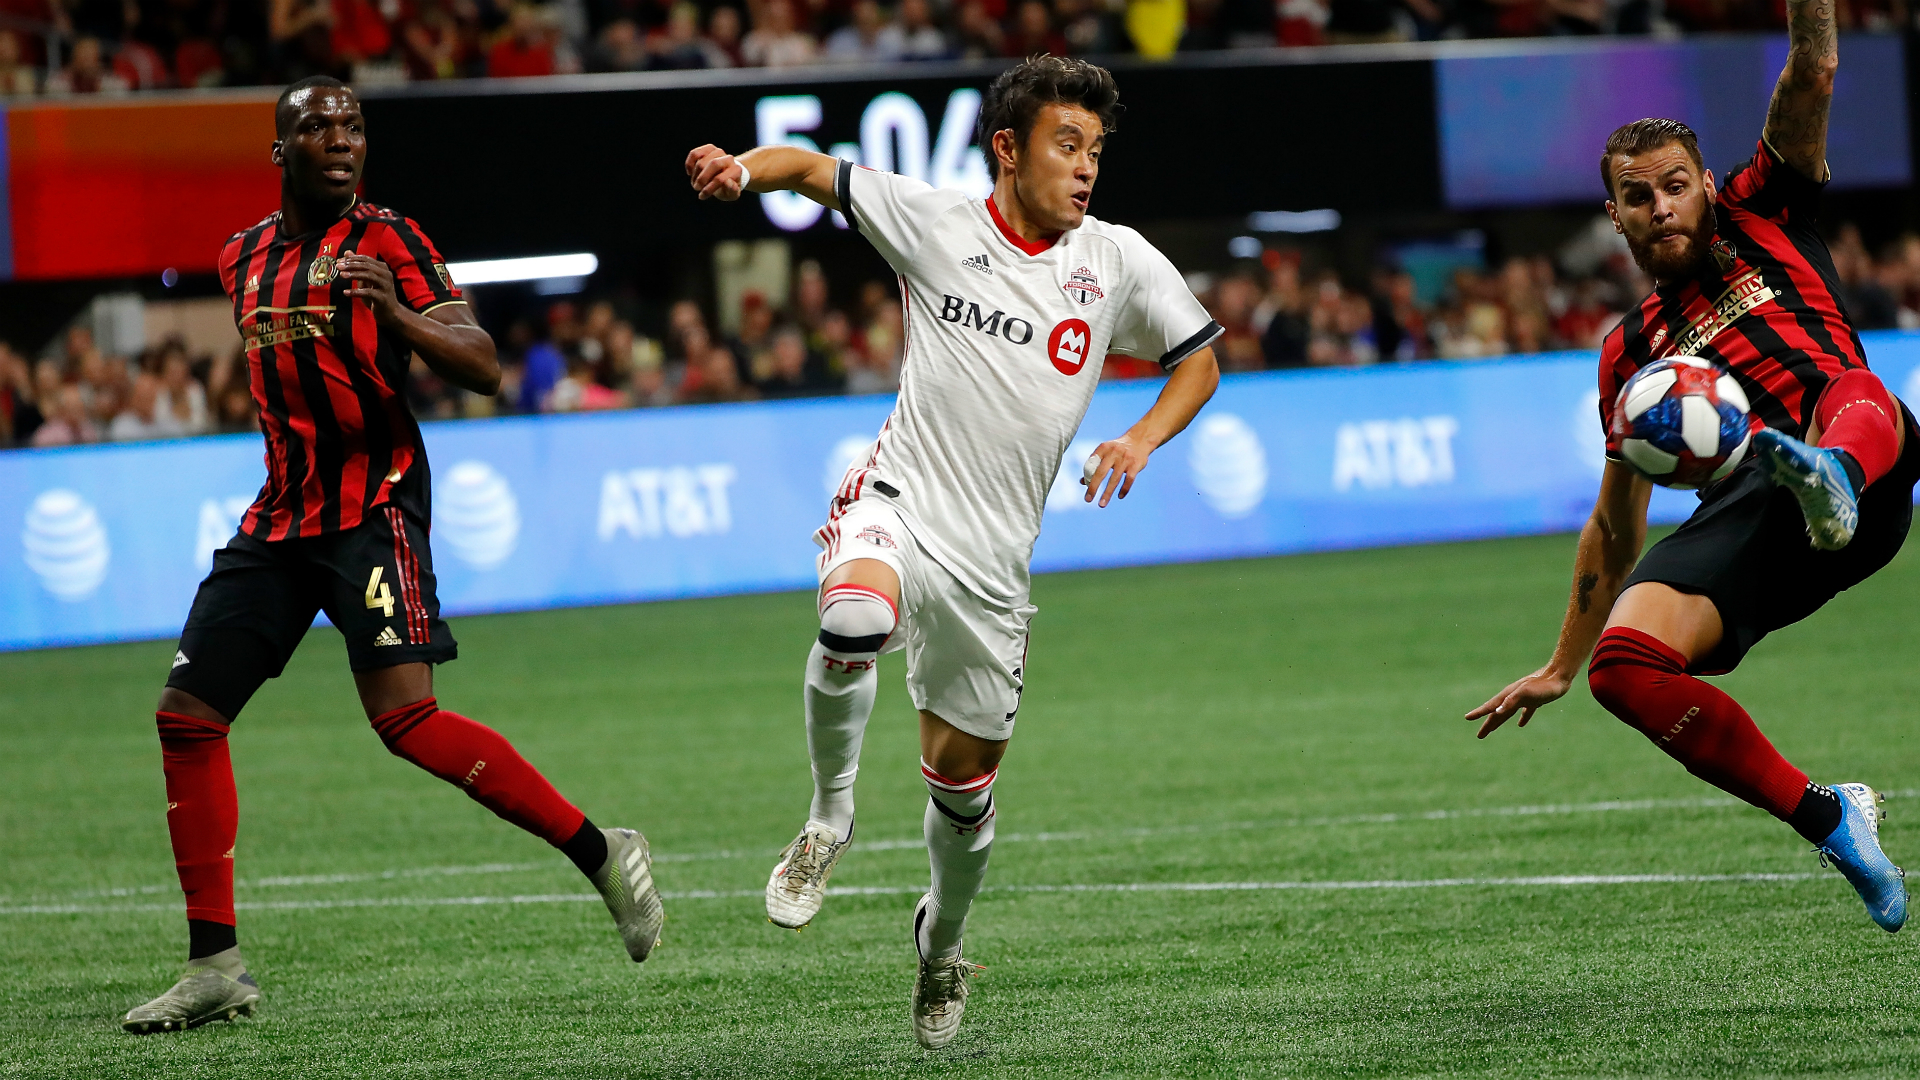 Atlanta United 1-2 Toronto: Defending champs beaten as visitors advance to MLS Cup final